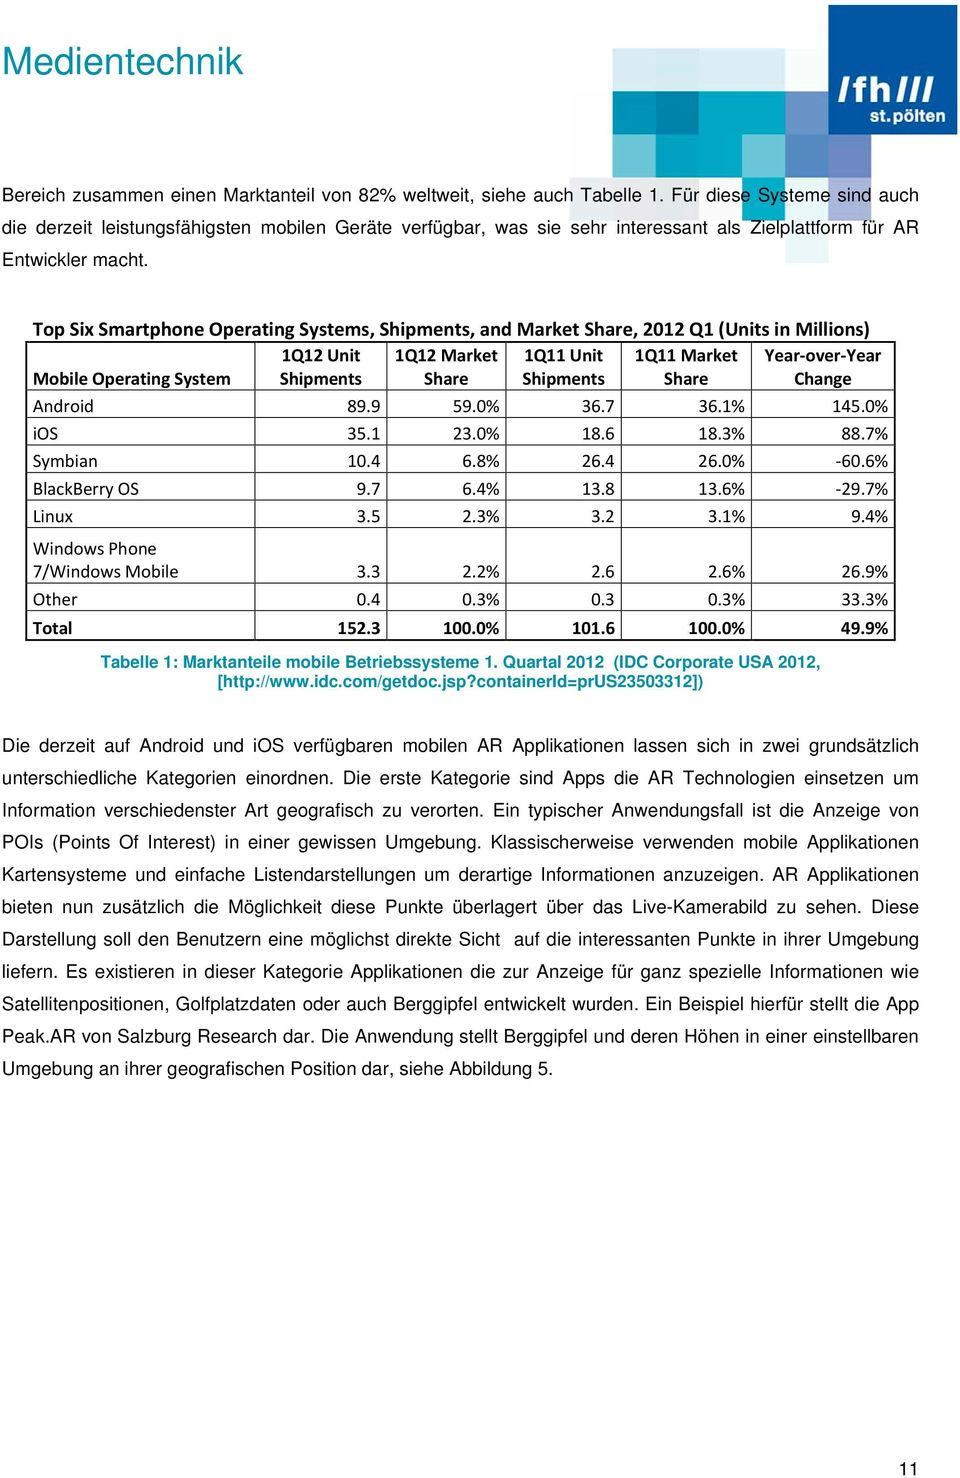 Top Six Smartphone Operating Systems, Shipments, and Market Share, 2012 Q1 (Units in Millions) Mobile Operating System 1Q12 Unit Shipments 1Q12 Market Share 1Q11 Unit Shipments 1Q11 Market Share